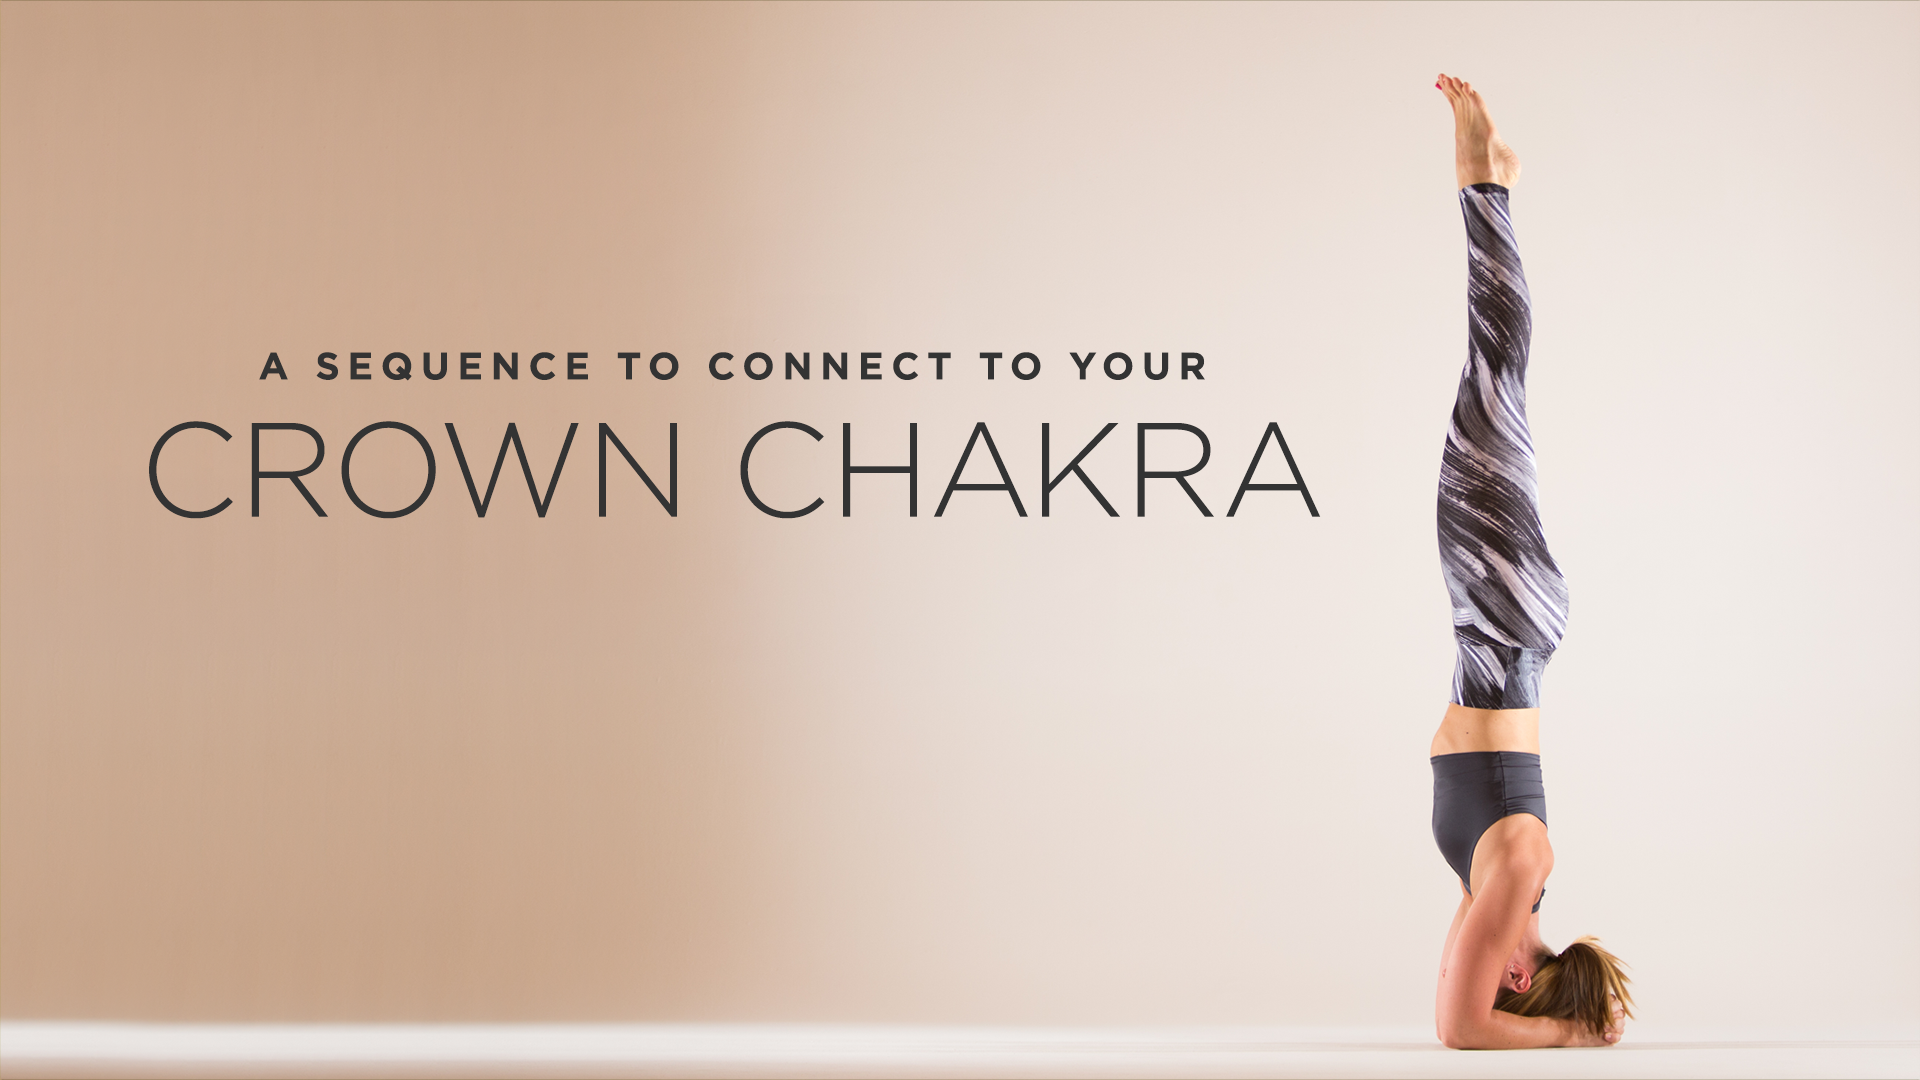 A Sequence to Connect to Your Crown Chakra